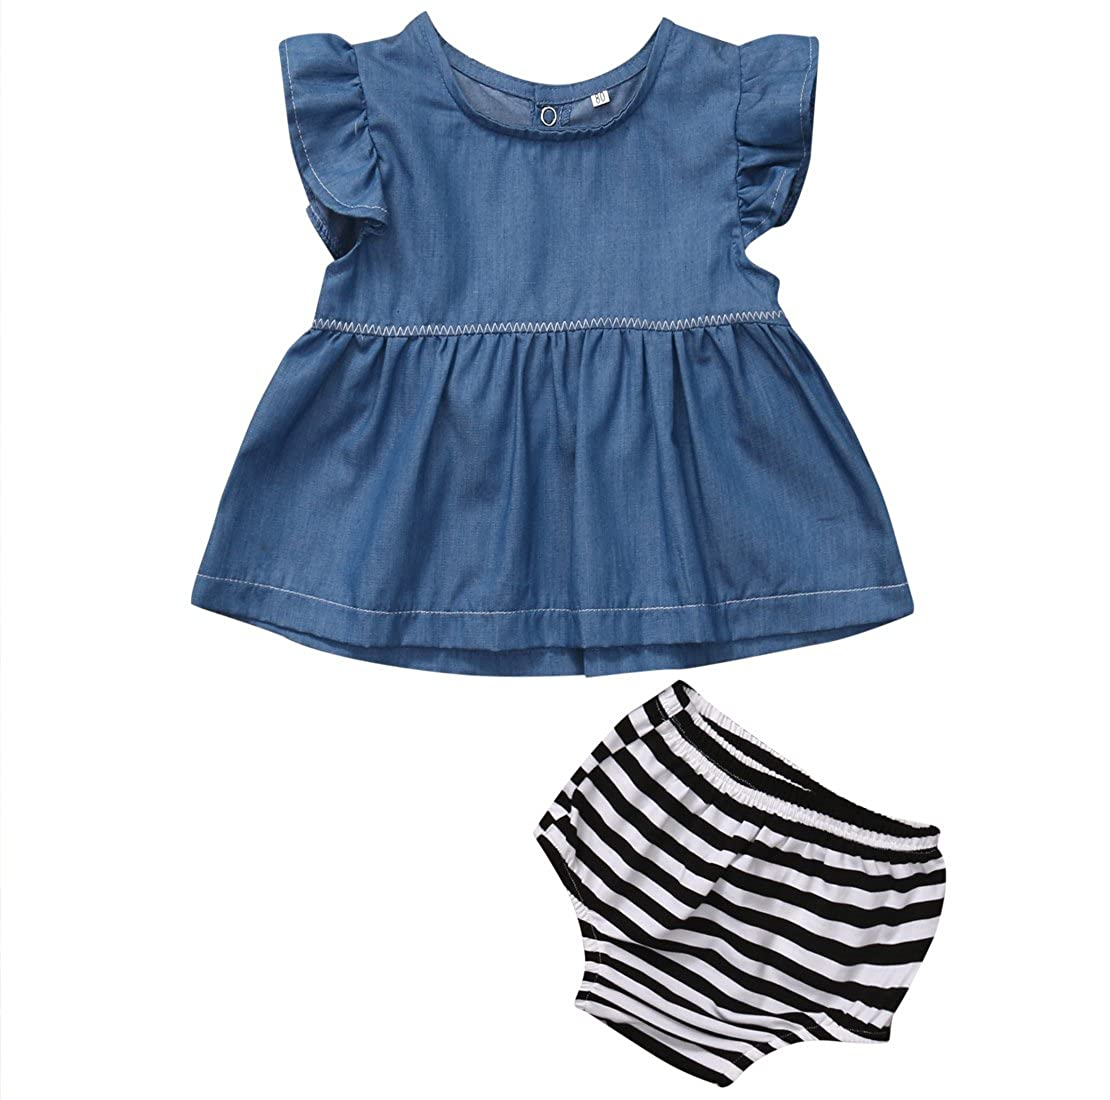 ITFABS 2pcs Baby Girl Cute Denim Jeans T-Shirt Tops + Striped Shorts Set Outfit